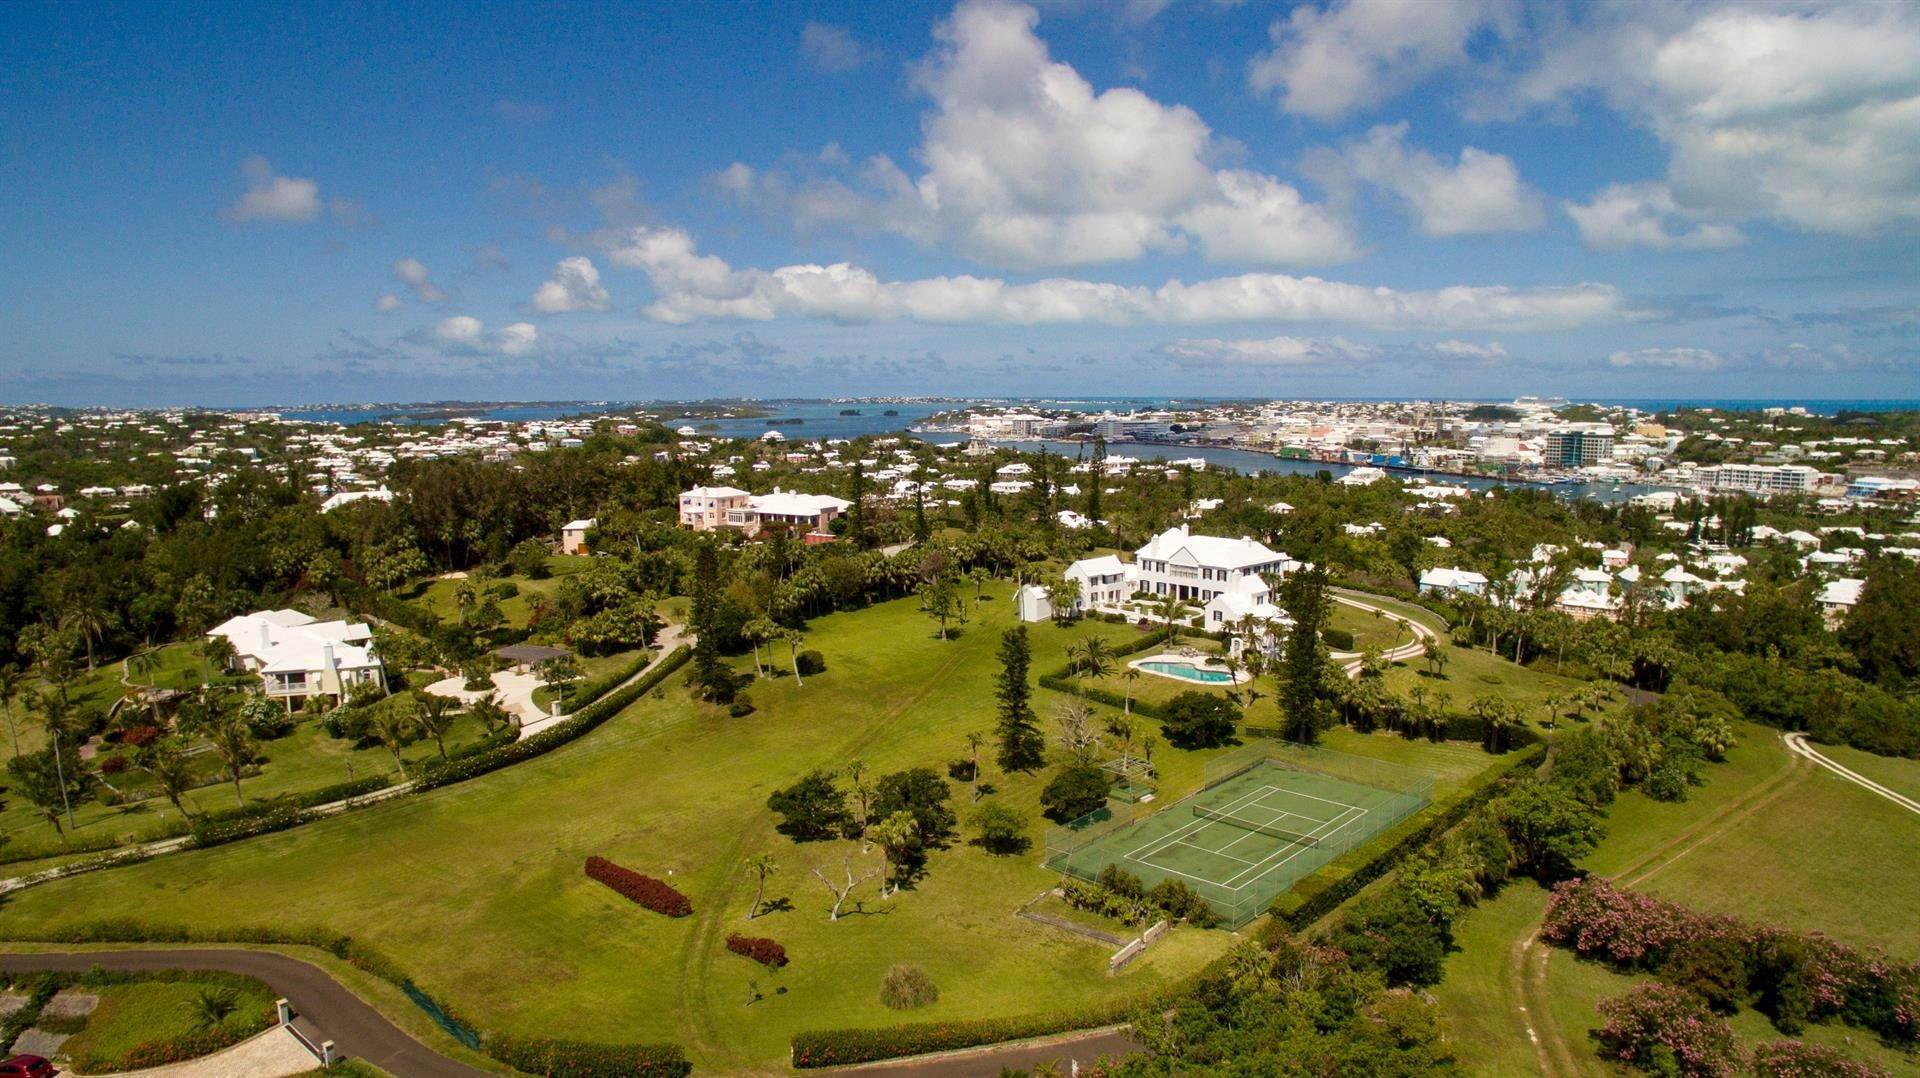 3. Residência para Venda às Bellevue Estate At Grape Bay Beach Bellevue Estate At Grape Bay Beach, 6 Bellevue Drive,Bermuda – Sinclair Realty